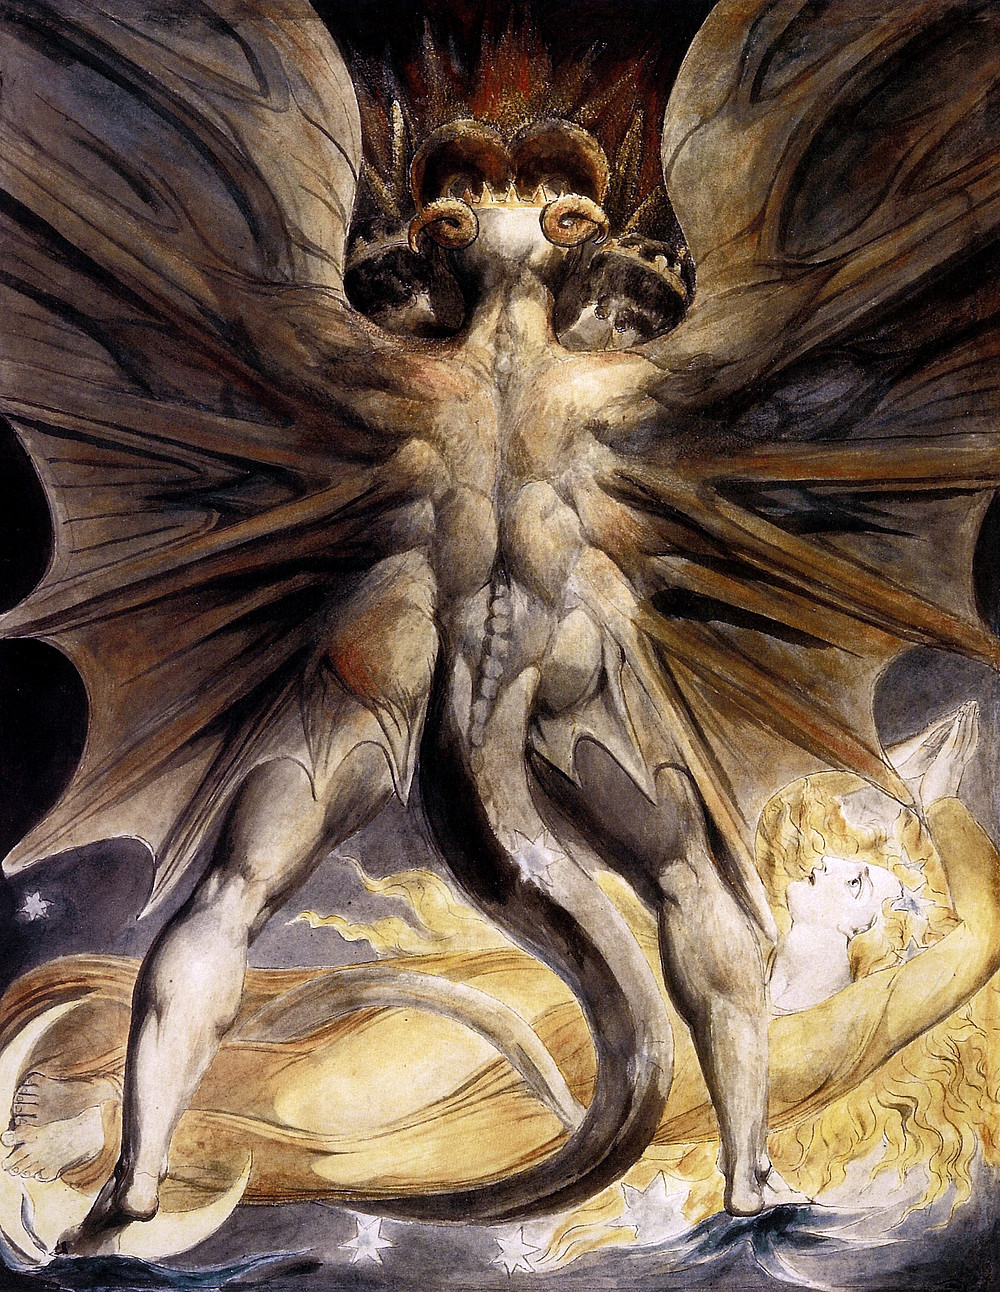 The Great Red Dragon - William Blake